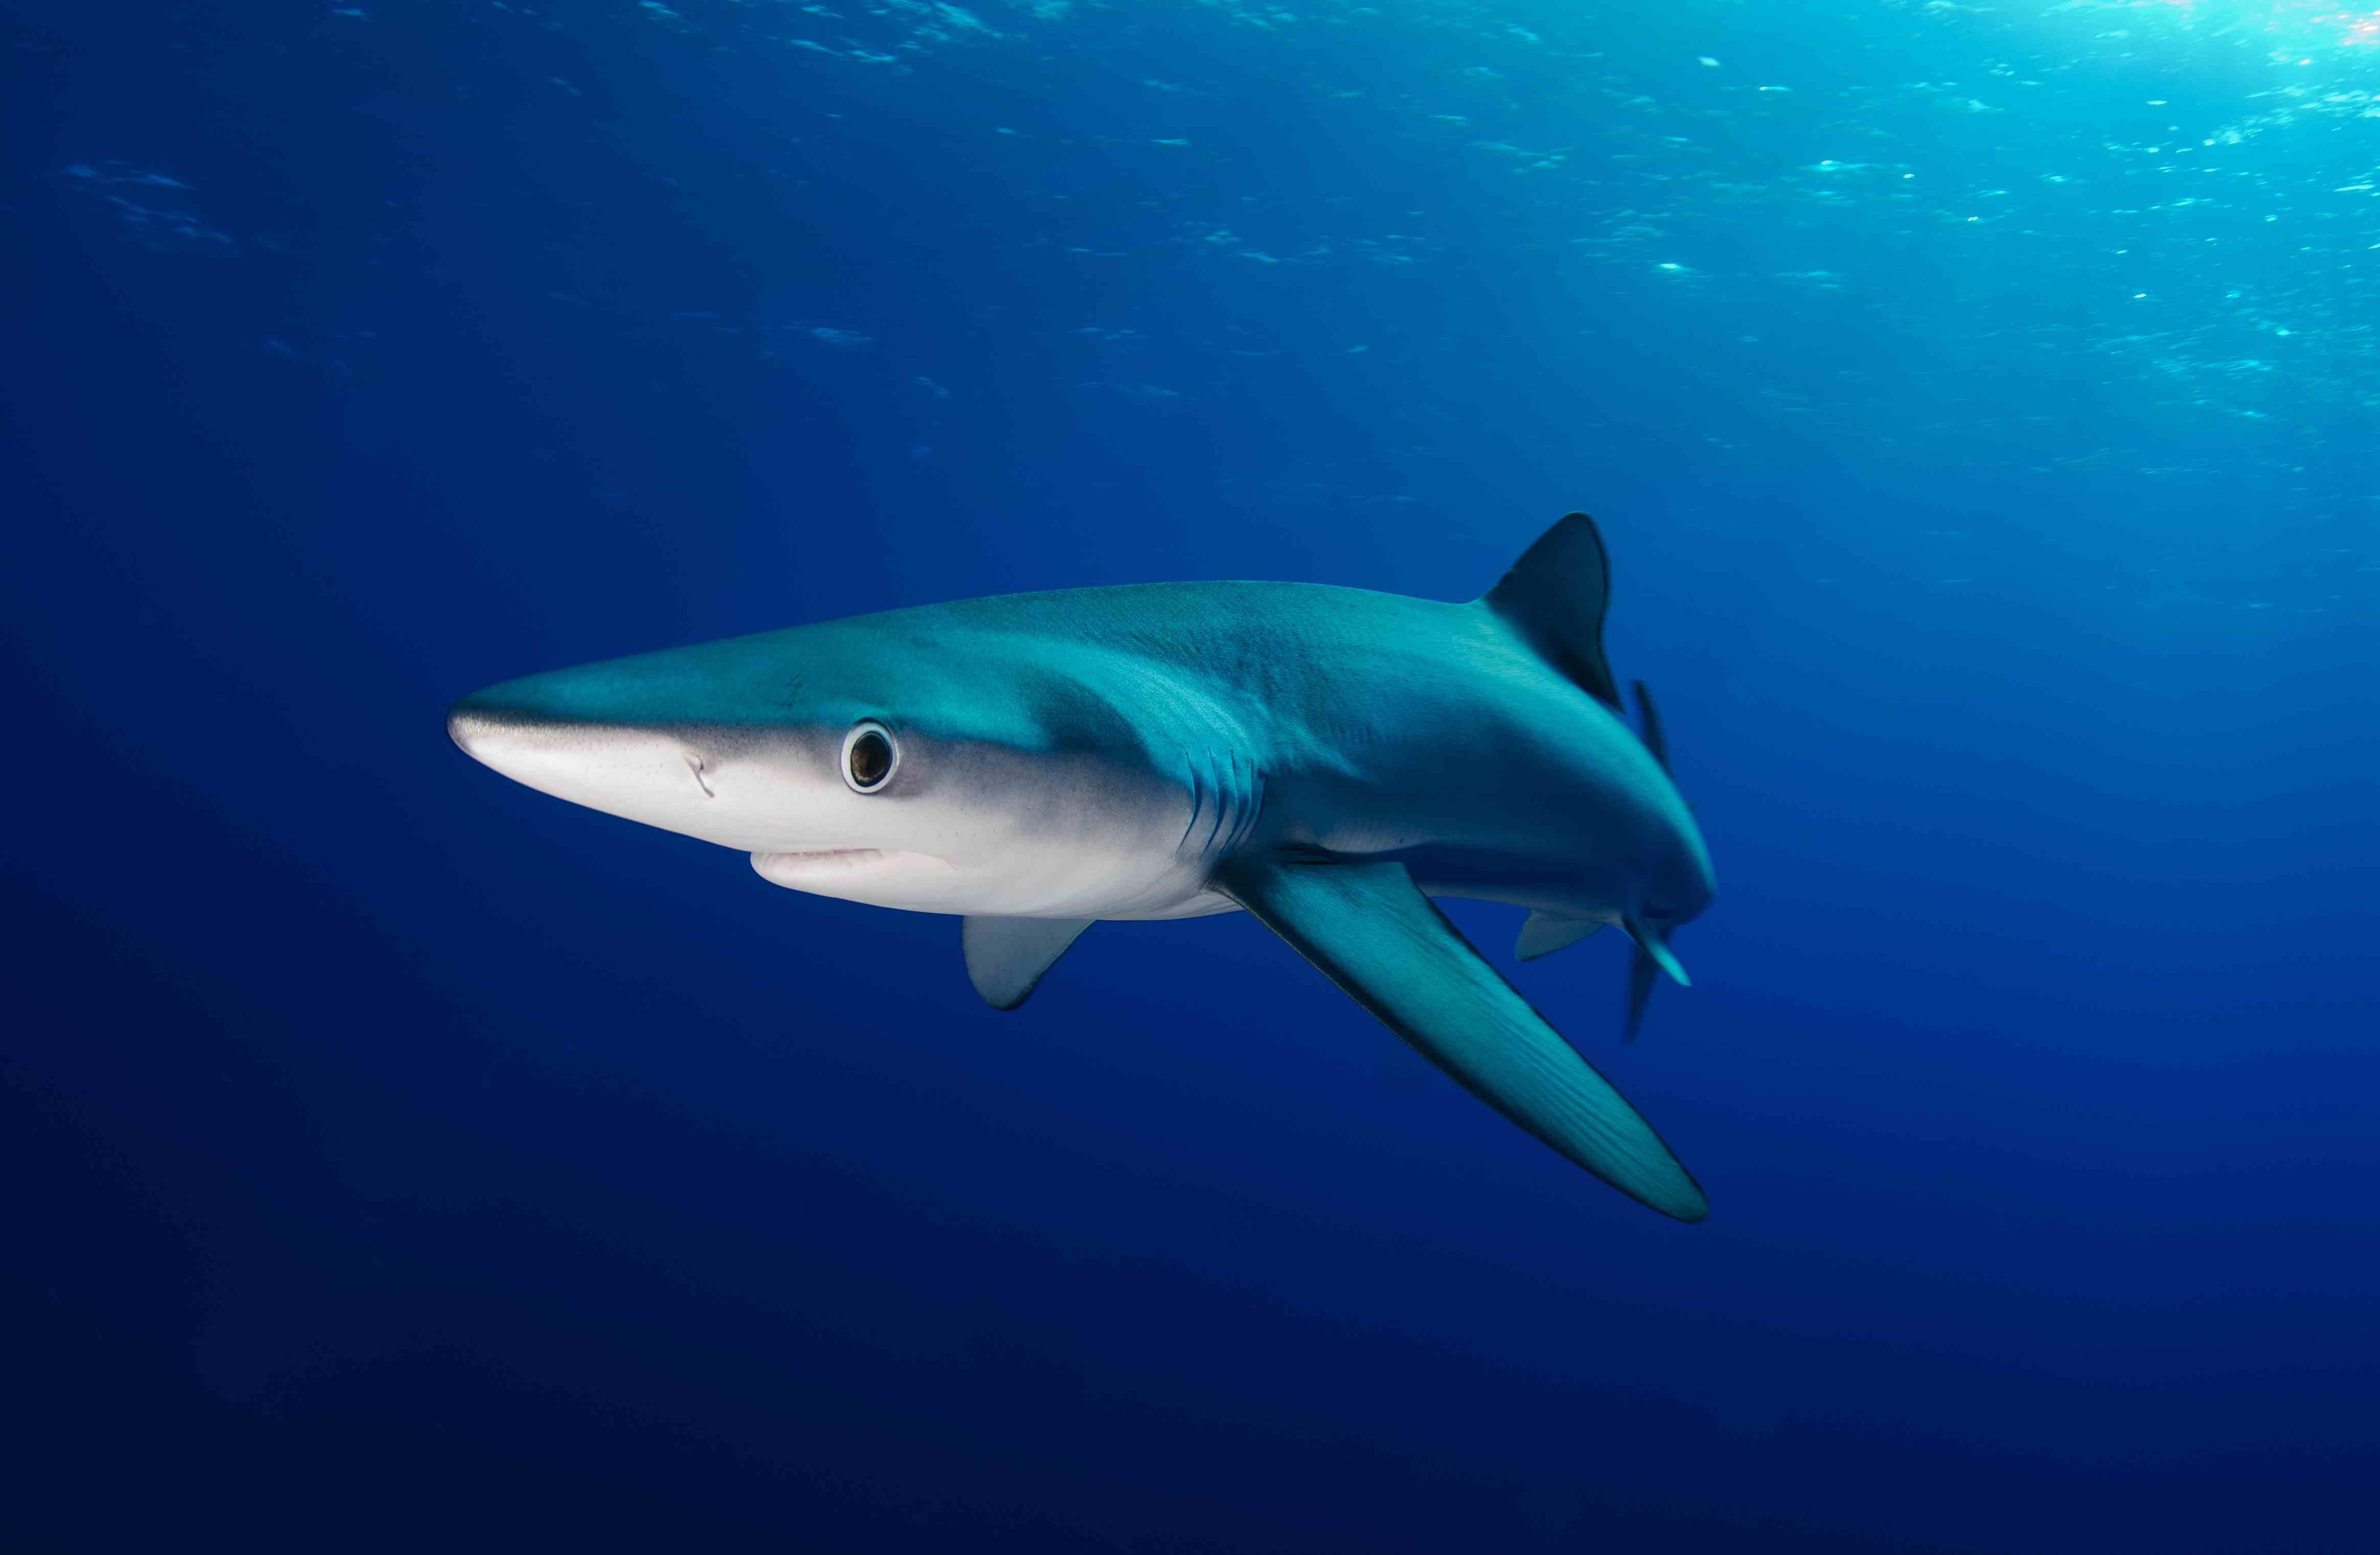 List of Shark Species and Facts